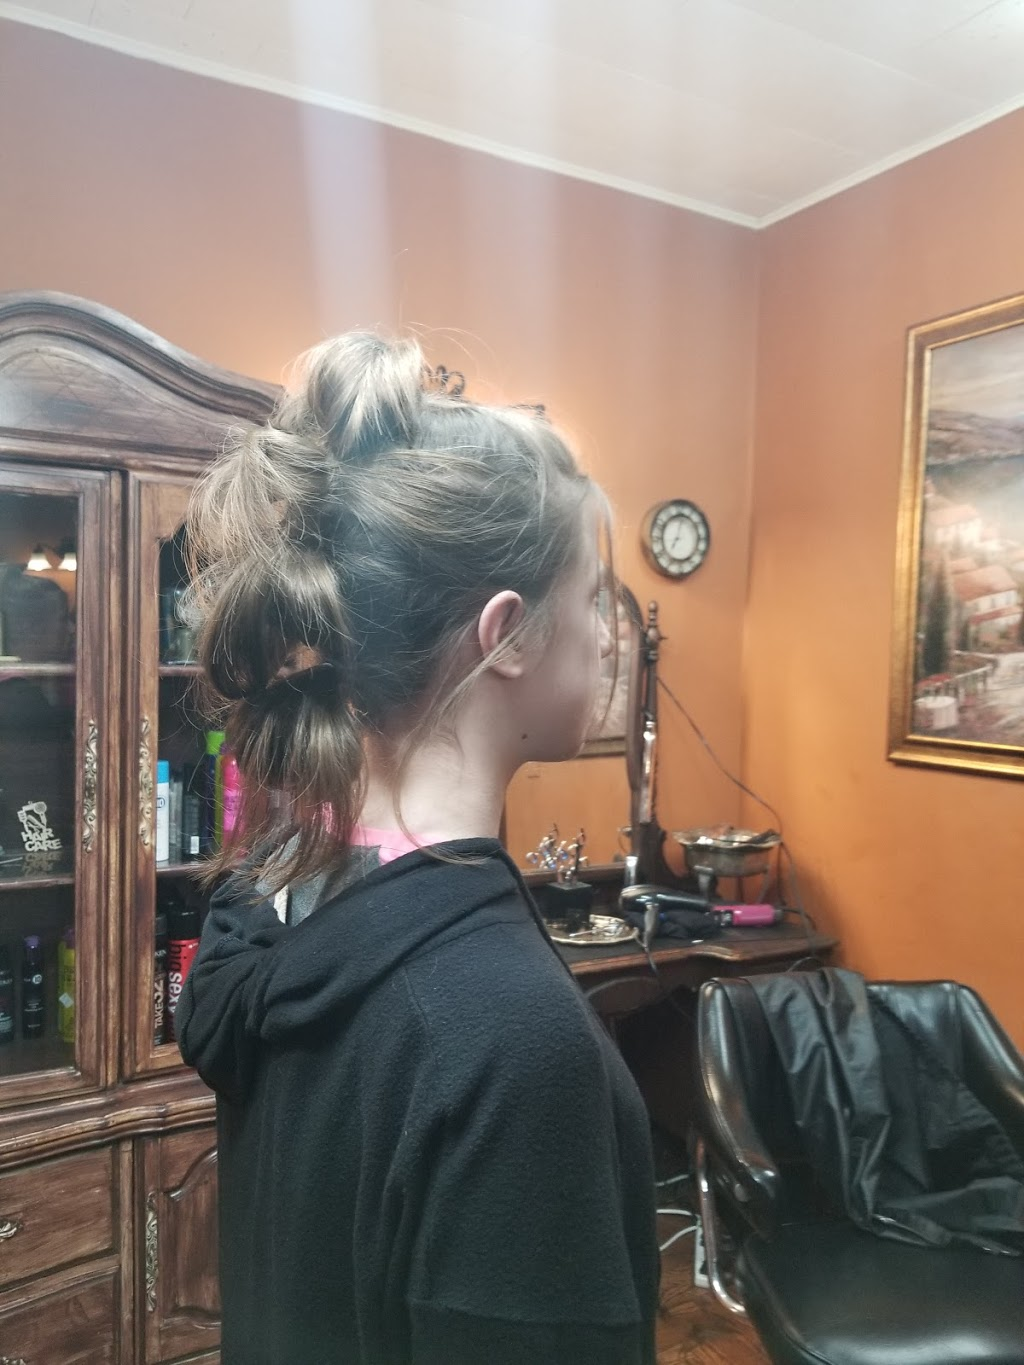 Rejuvenation Station - hair care  | Photo 3 of 10 | Address: 105 Railroad St, Kouts, IN 46347, USA | Phone: (219) 575-3649